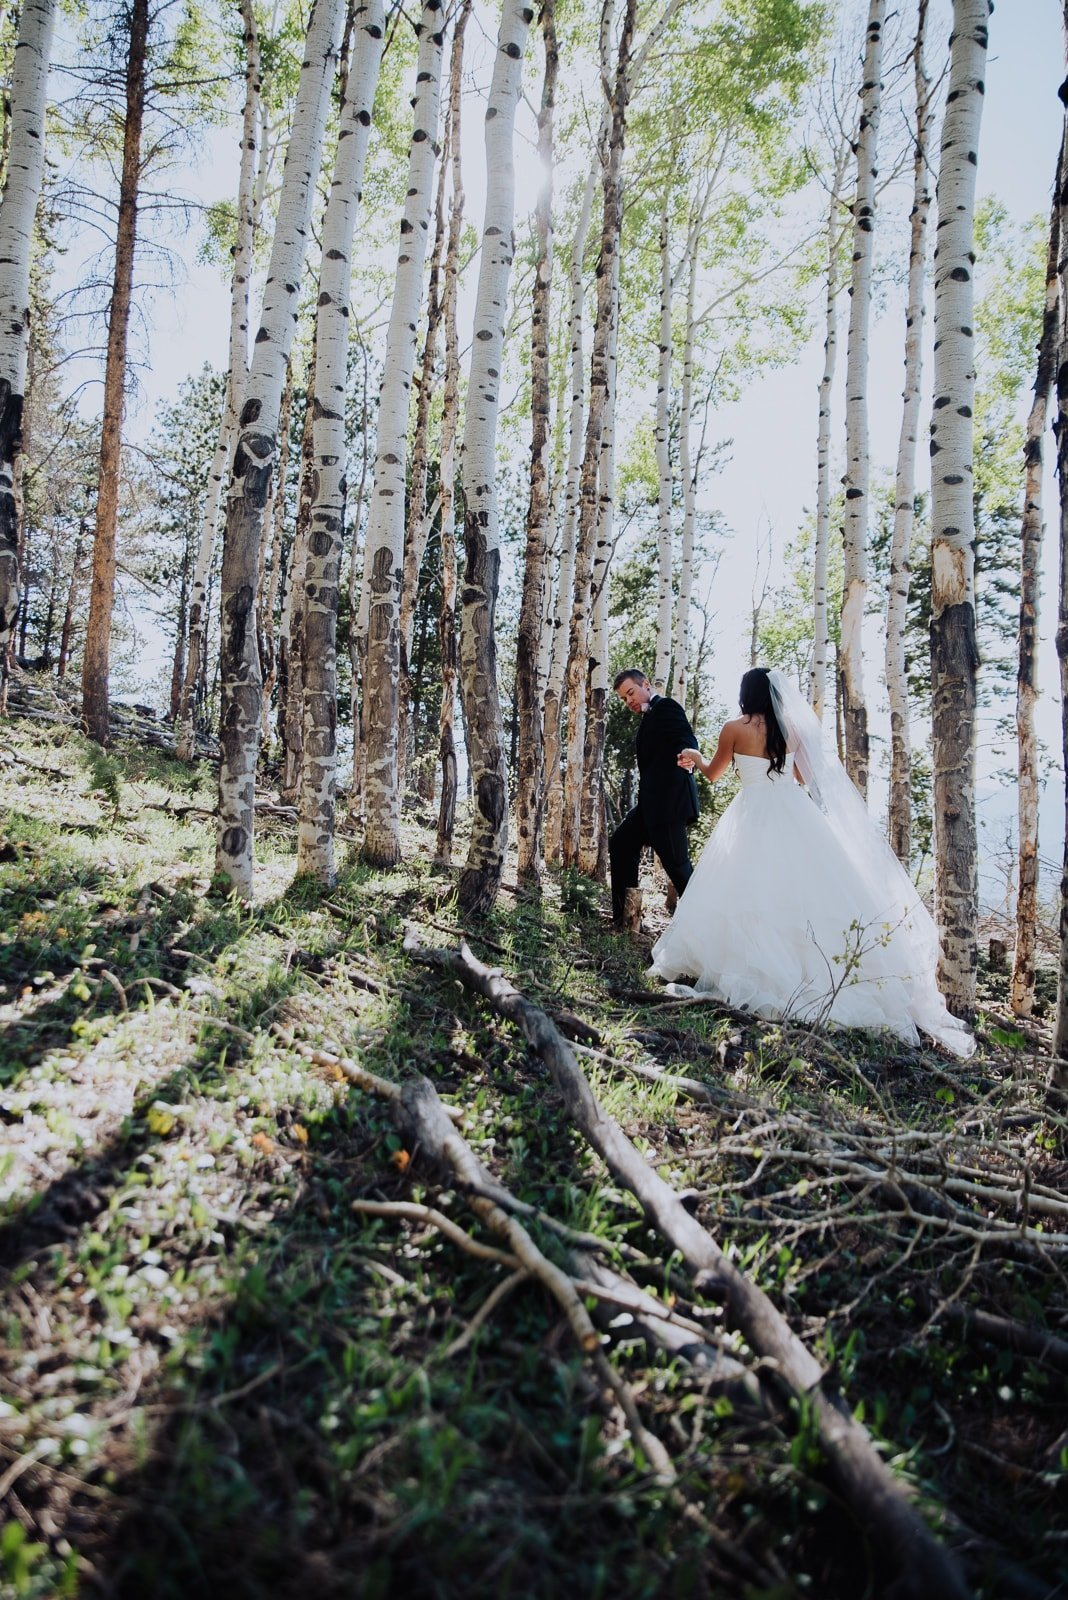 JosieV-Photography-Wedding (11 of 16)-min